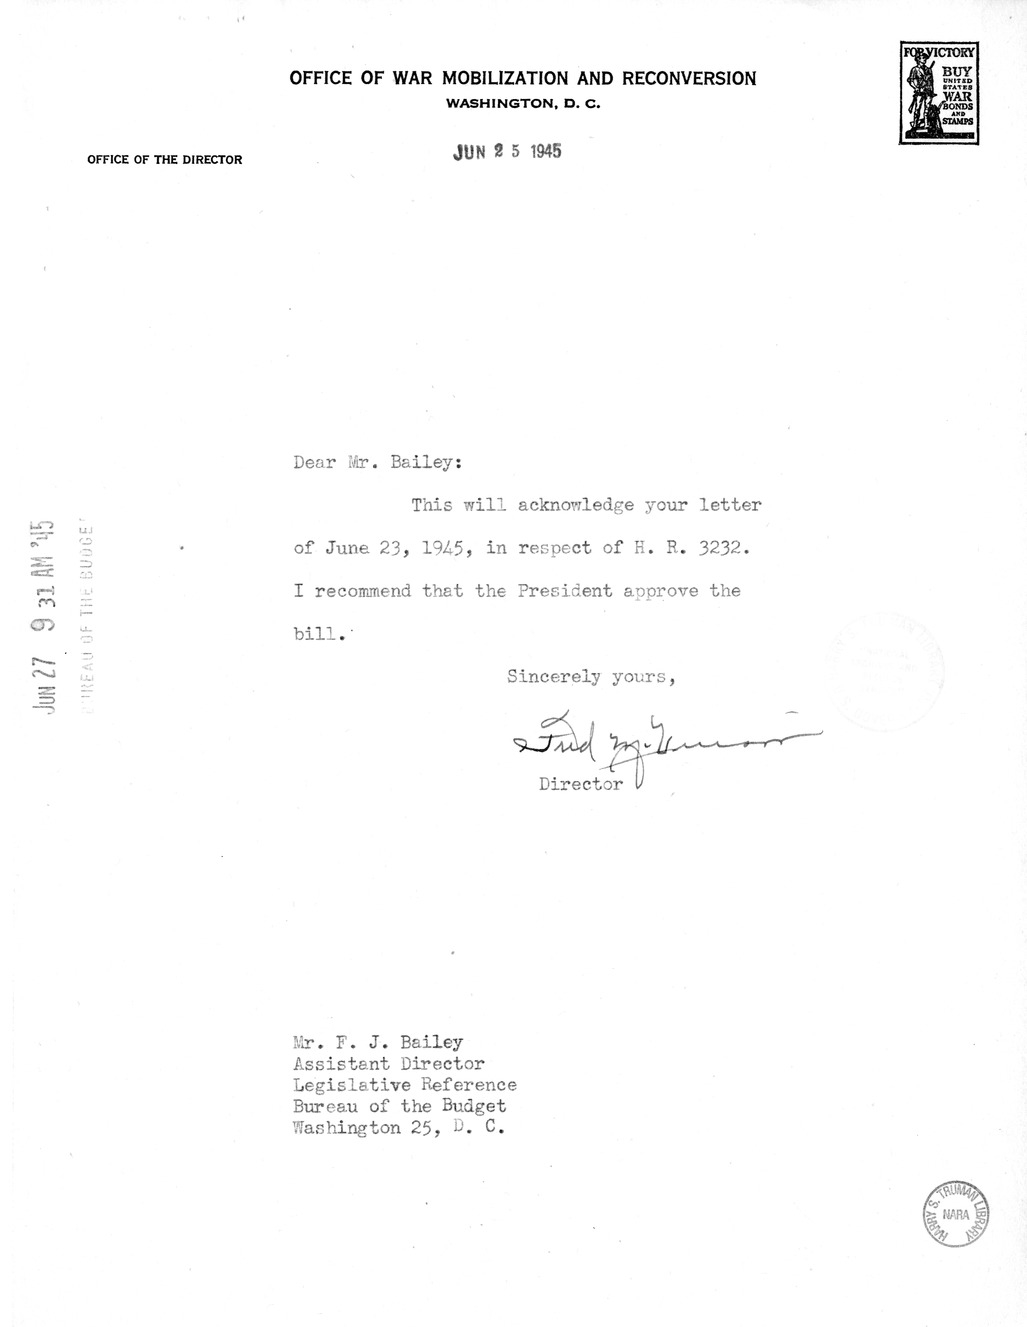 Memorandum from Harold D. Smith to M. C. Latta, H. R. 3232, to Amend an Act to Authorize the President to Requisition Certain Articles and Materials for the Use of the United States, With Attachments